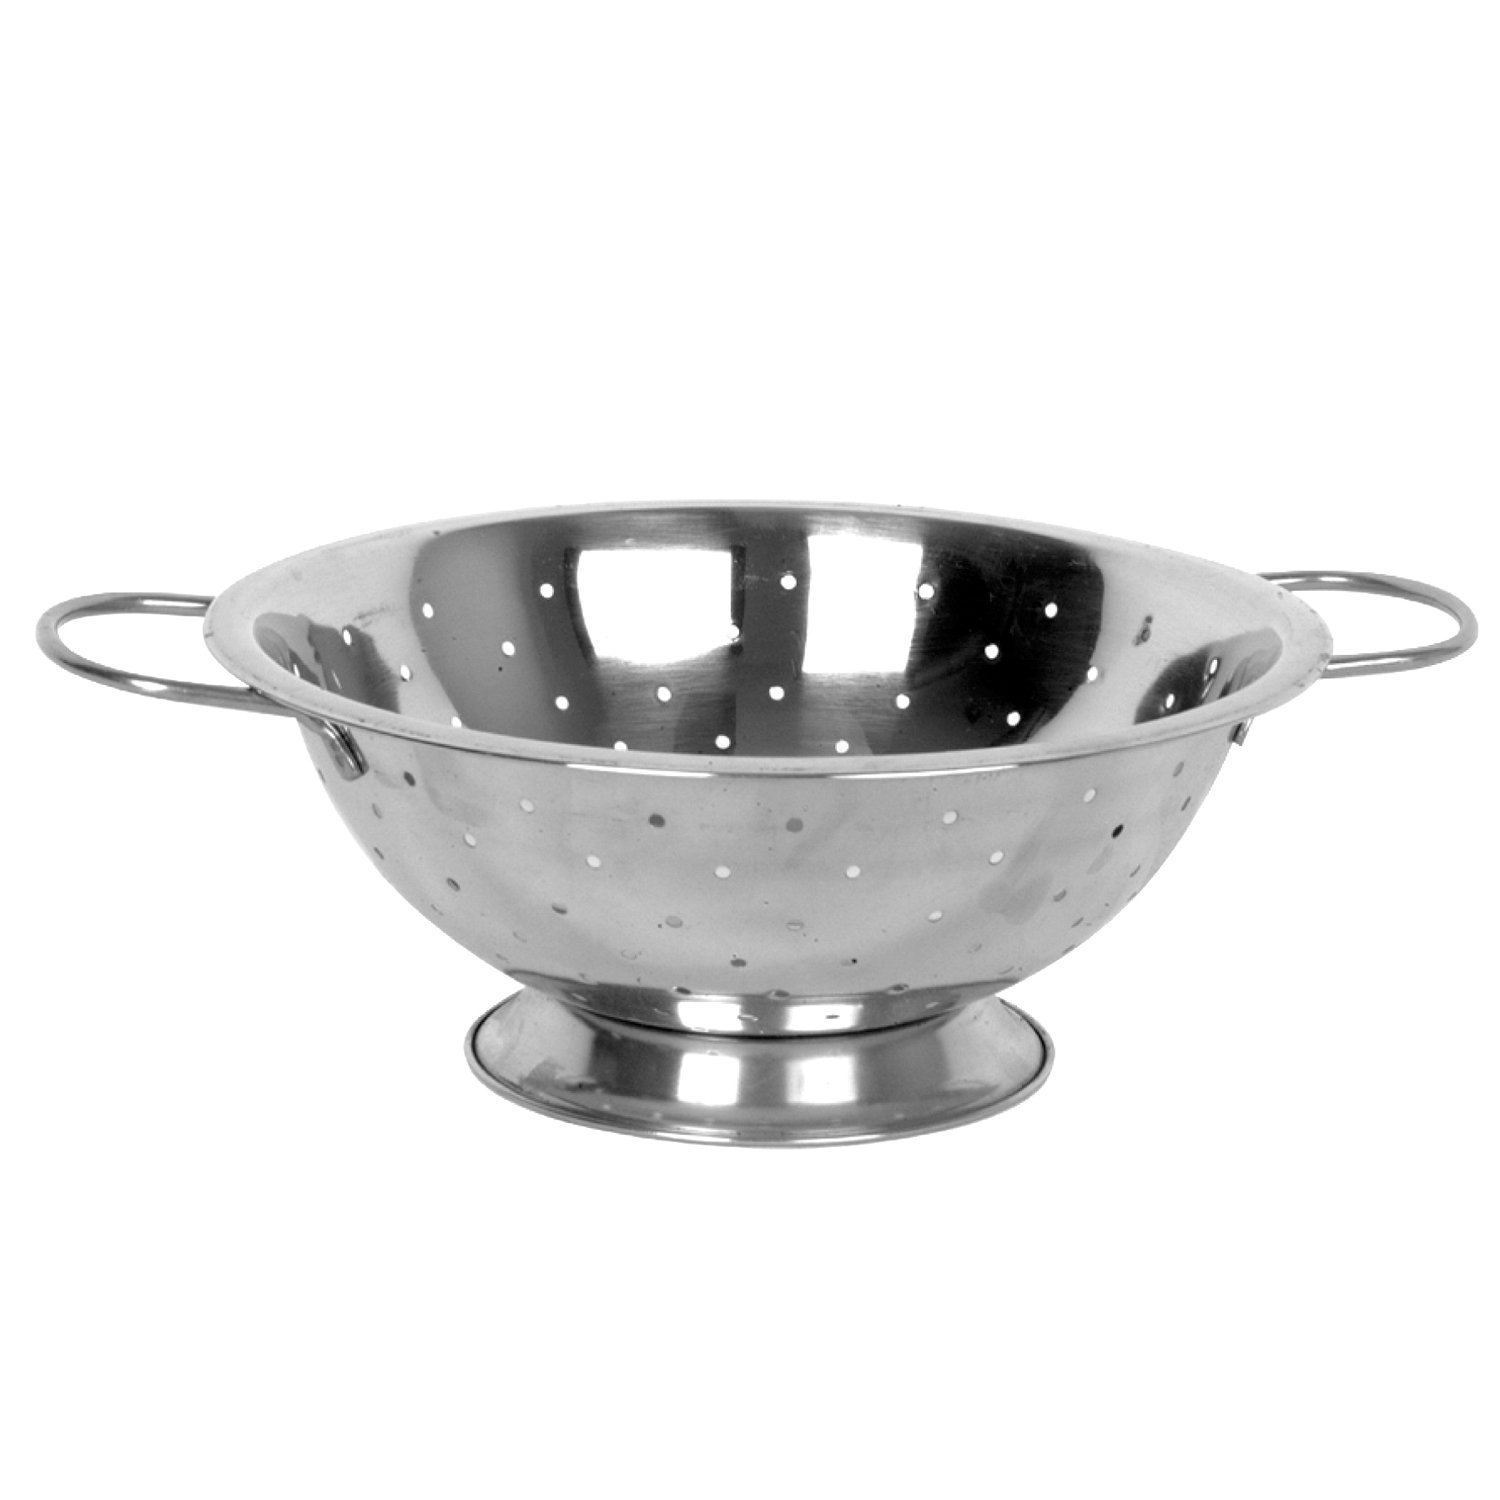 é 3 Quart Stainless Steel Colander, USA, Brand Excellant by